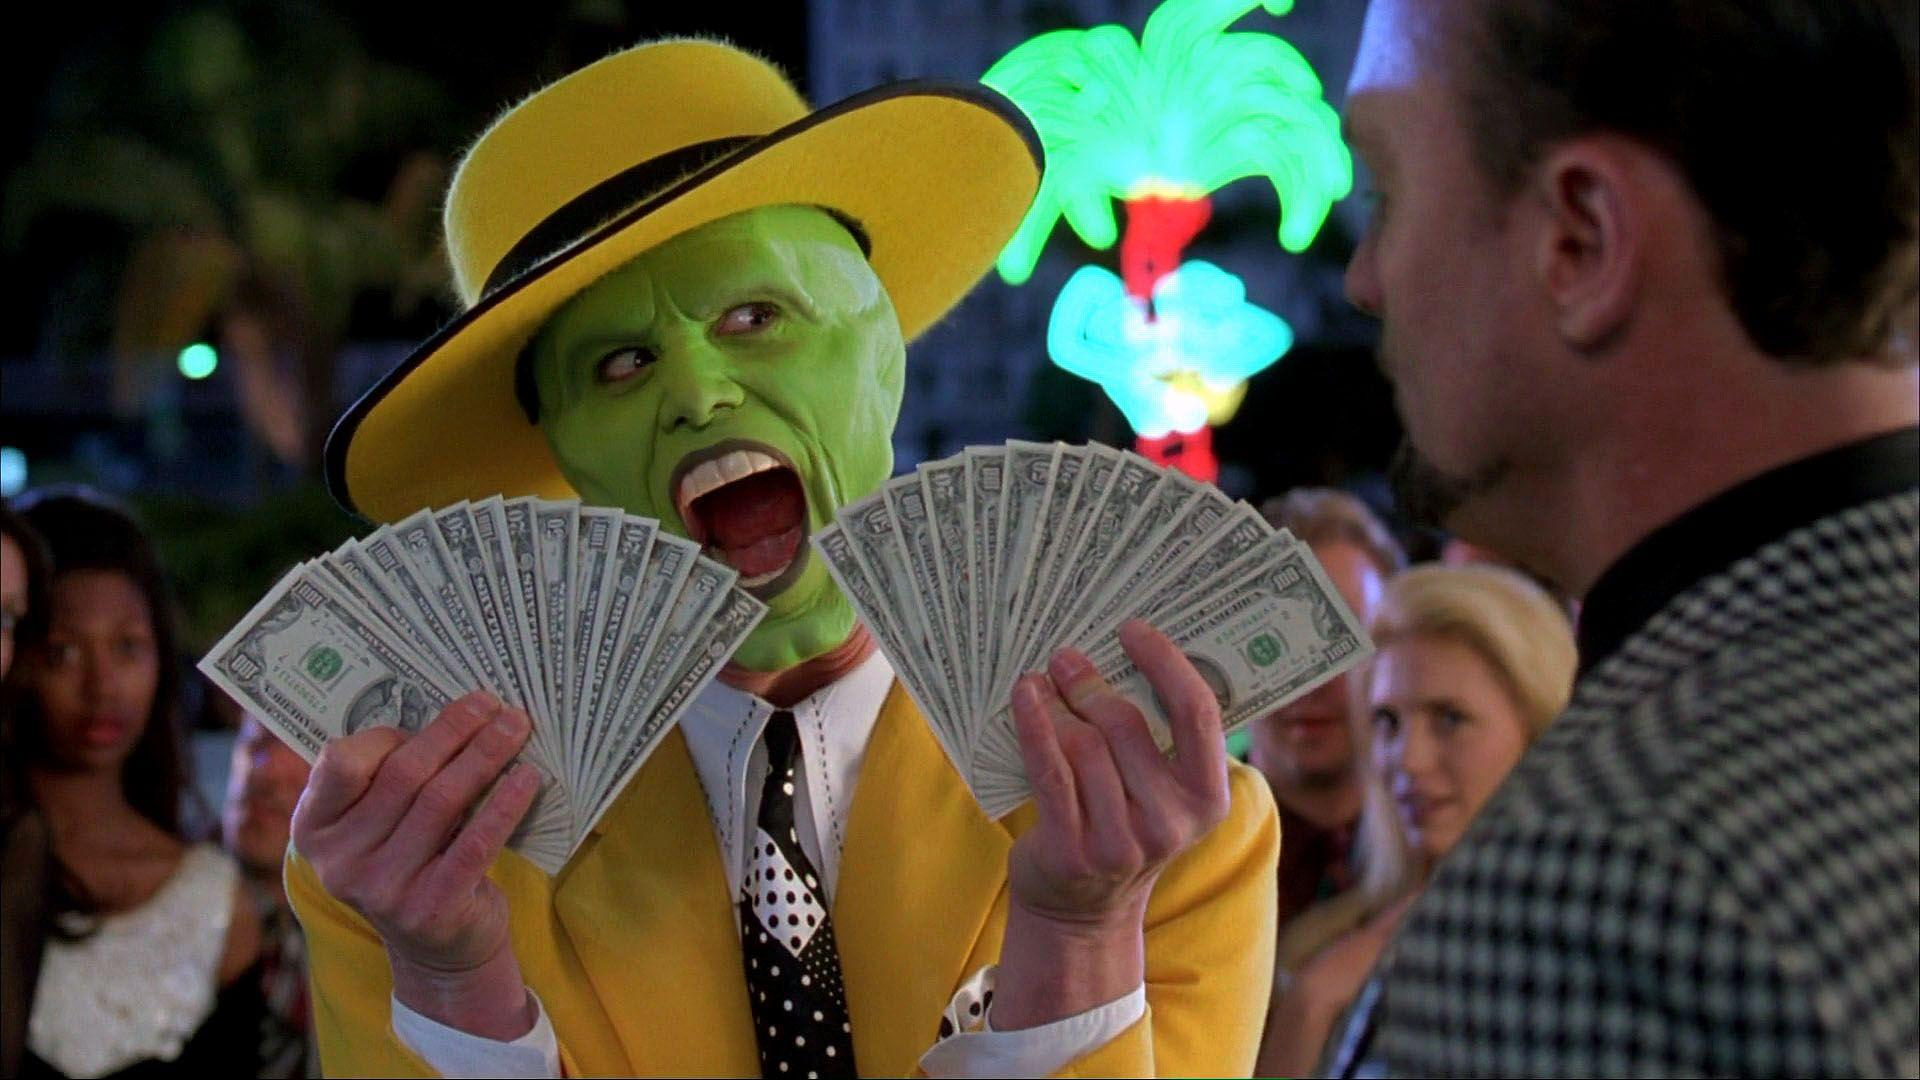 This is a really funny scene from The Mask when Stanley Ipkiss